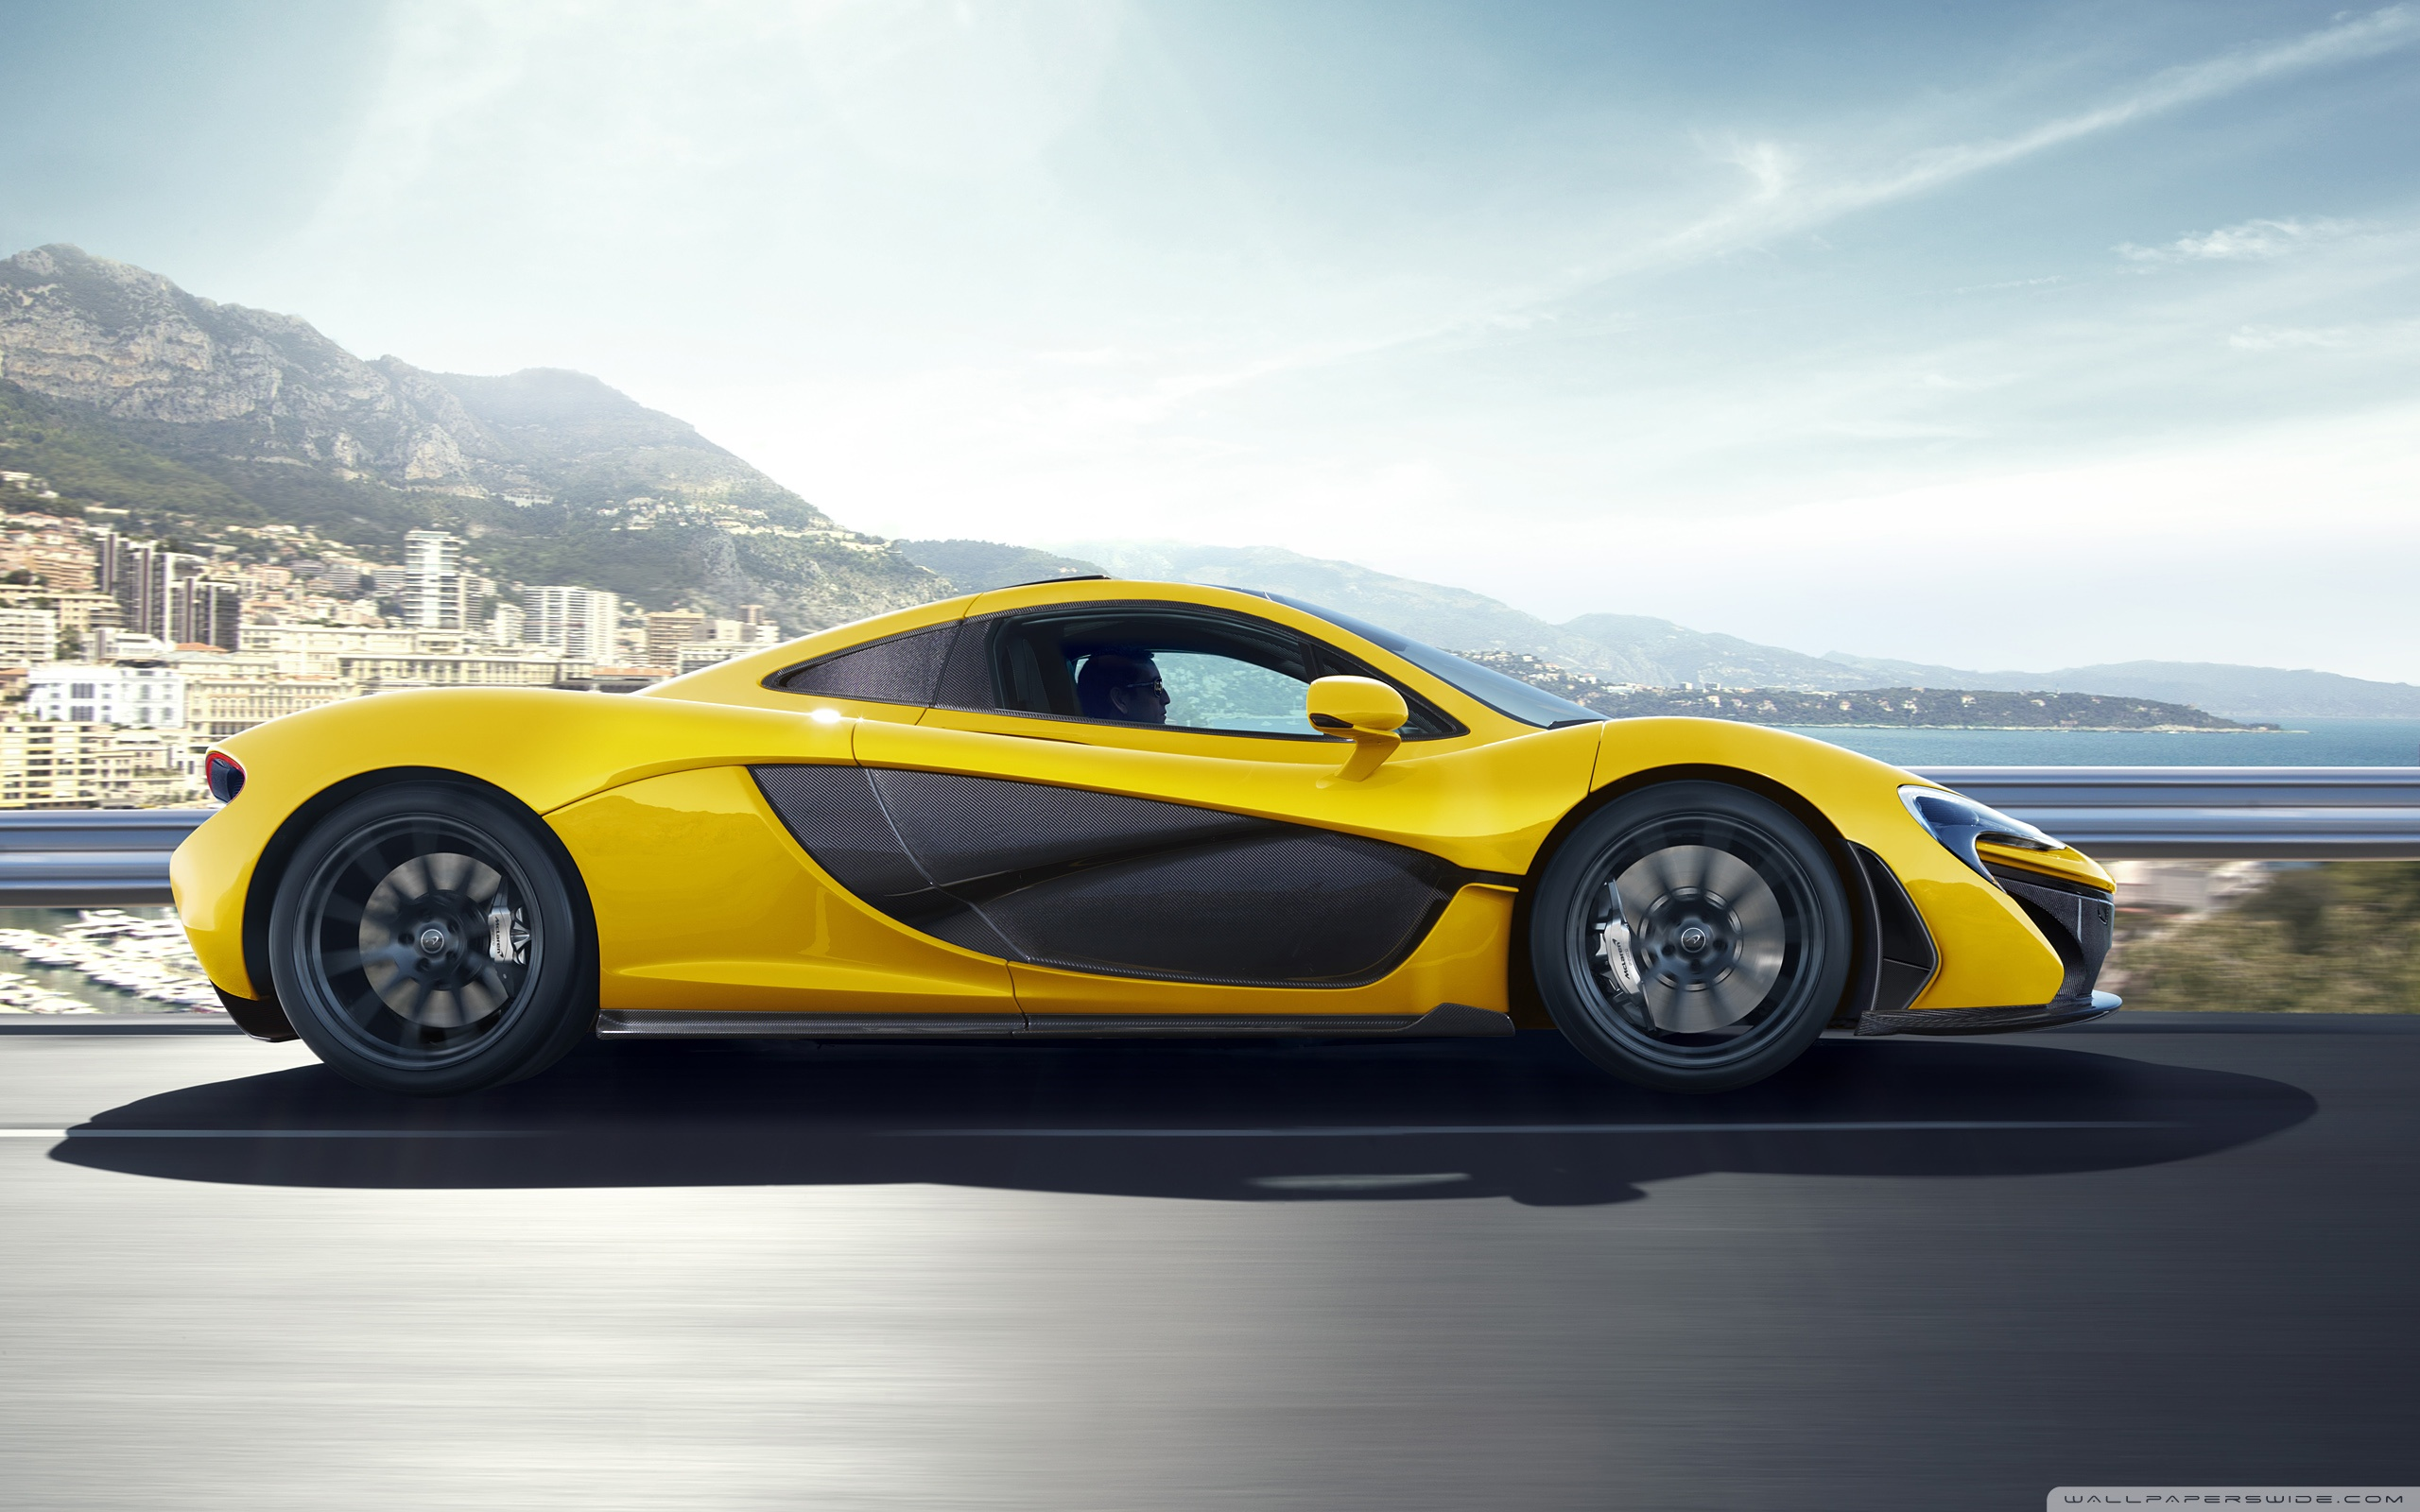 2014 Mclaren P1 Side View 4k Hd Desktop Wallpaper For 4k Ultra Hd